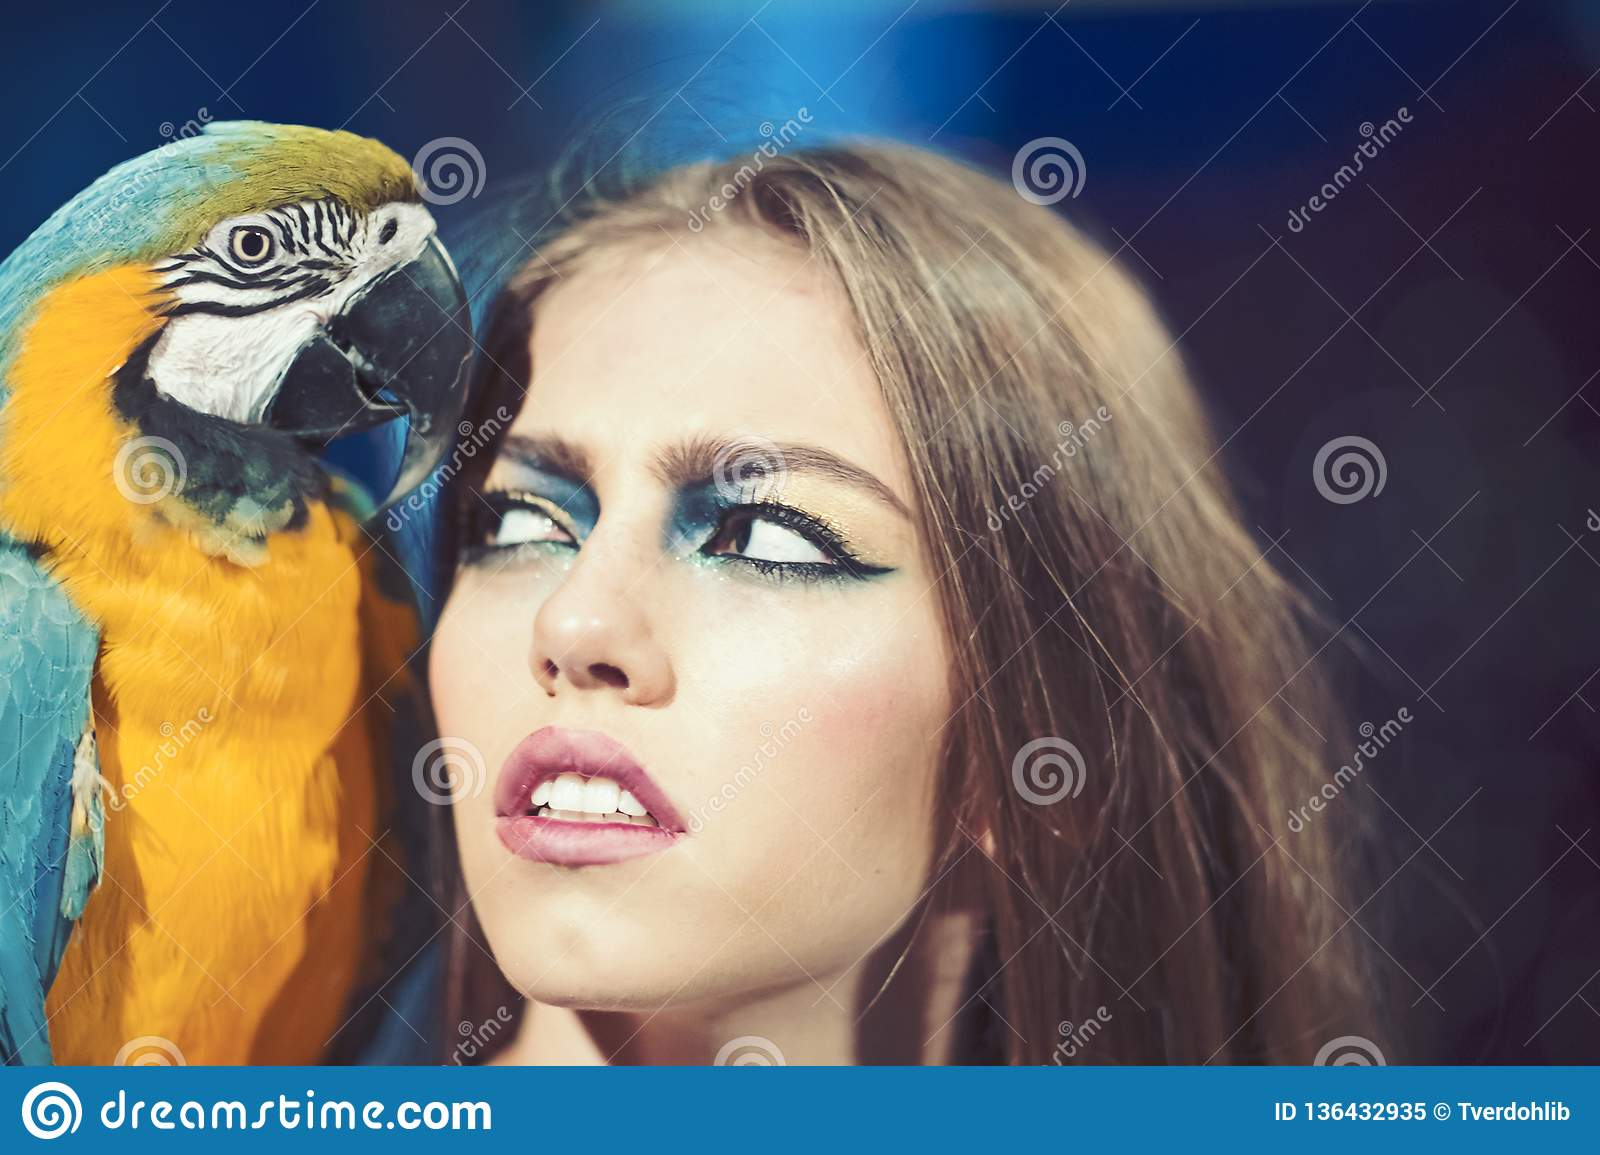 Woman with blue and yellow macaw. girl with makeup and bird pet. Beauty  model with exotic ara animal. Friends and friendship.